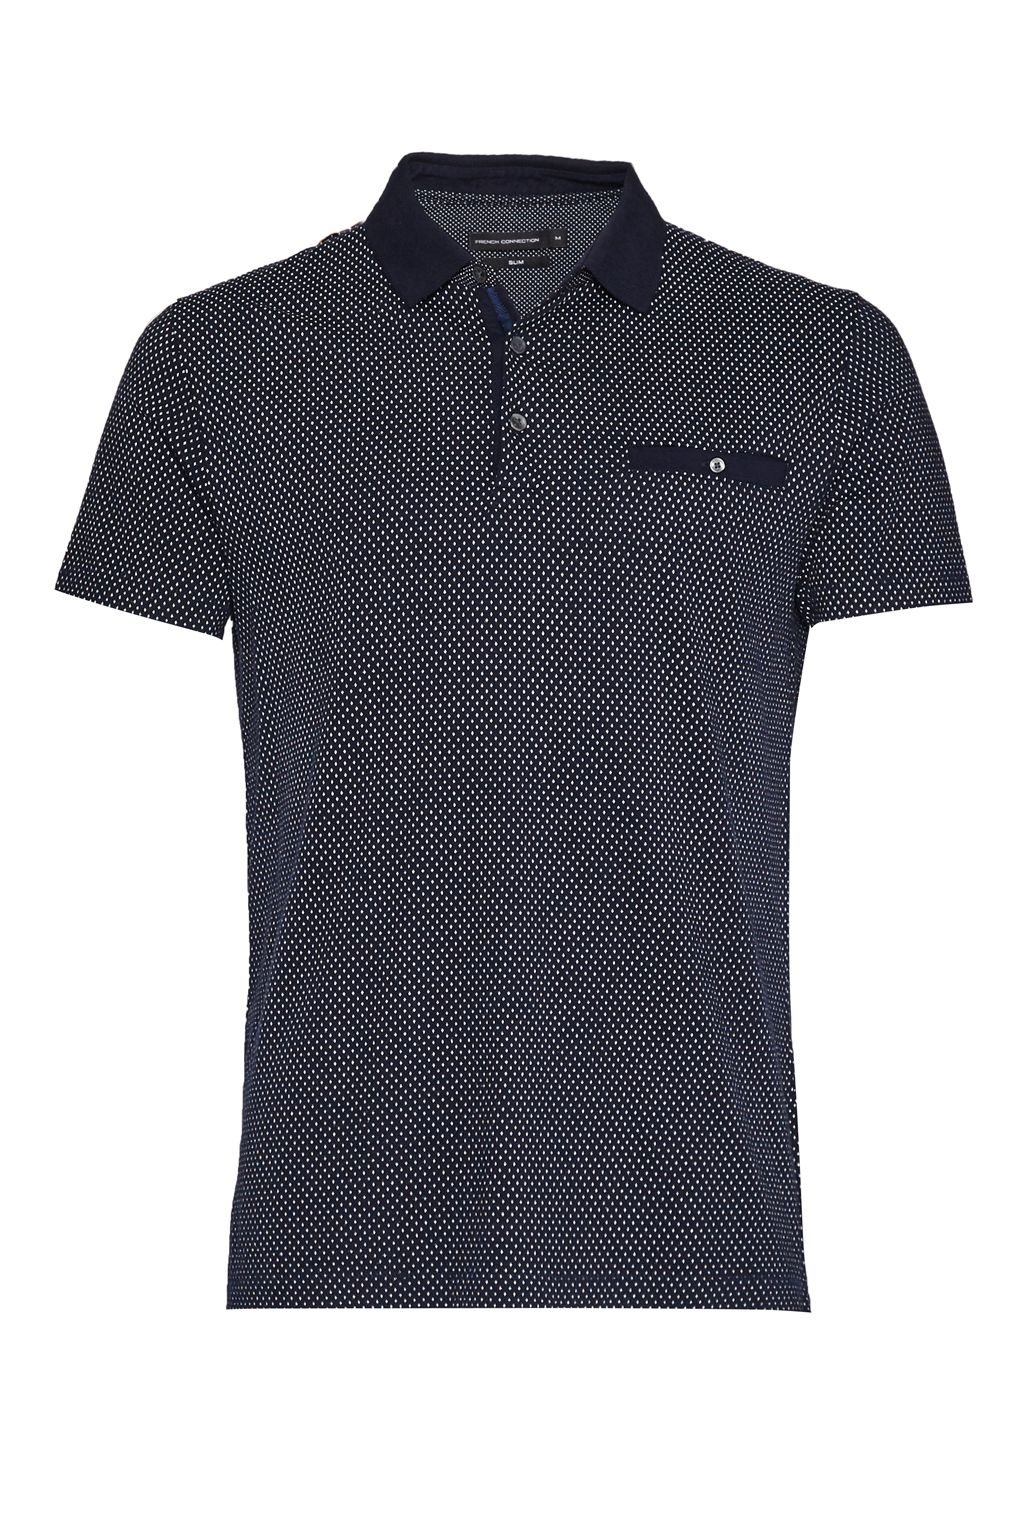 Mens French Connection Summer Ditsy Polo Shirt Navy